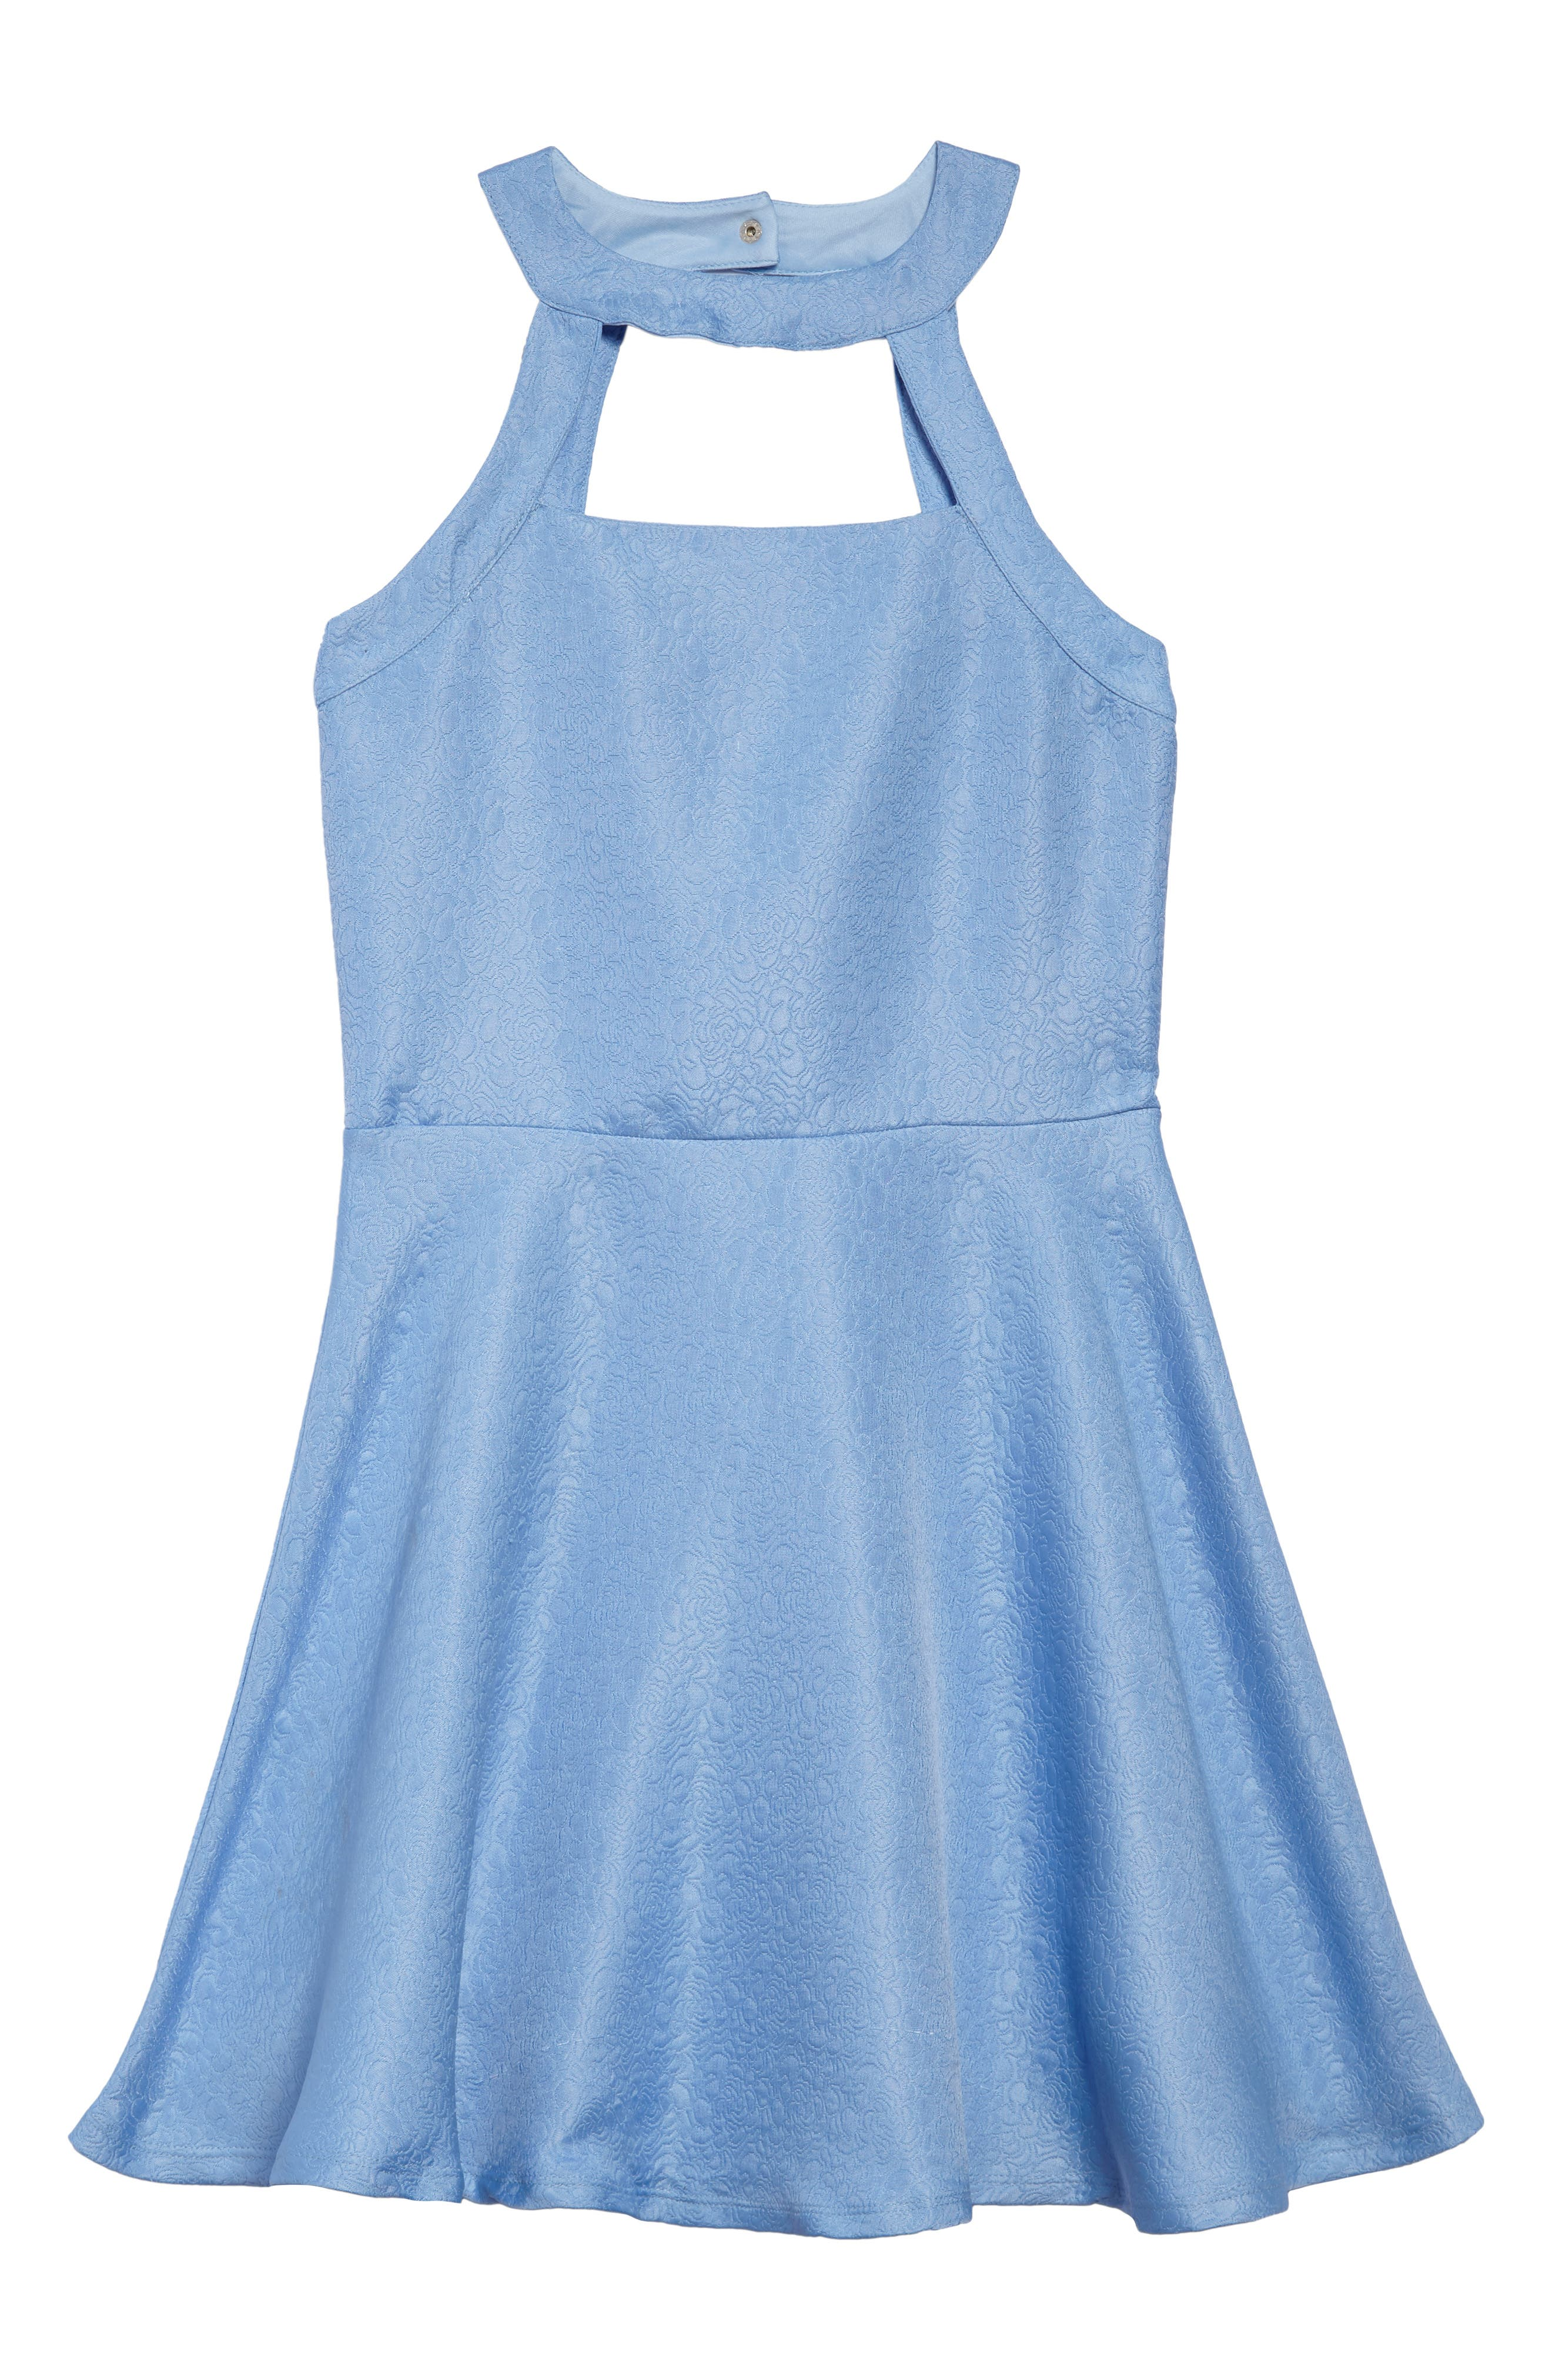 Girls\' Miss Behave Clothing and Accessories | Nordstrom